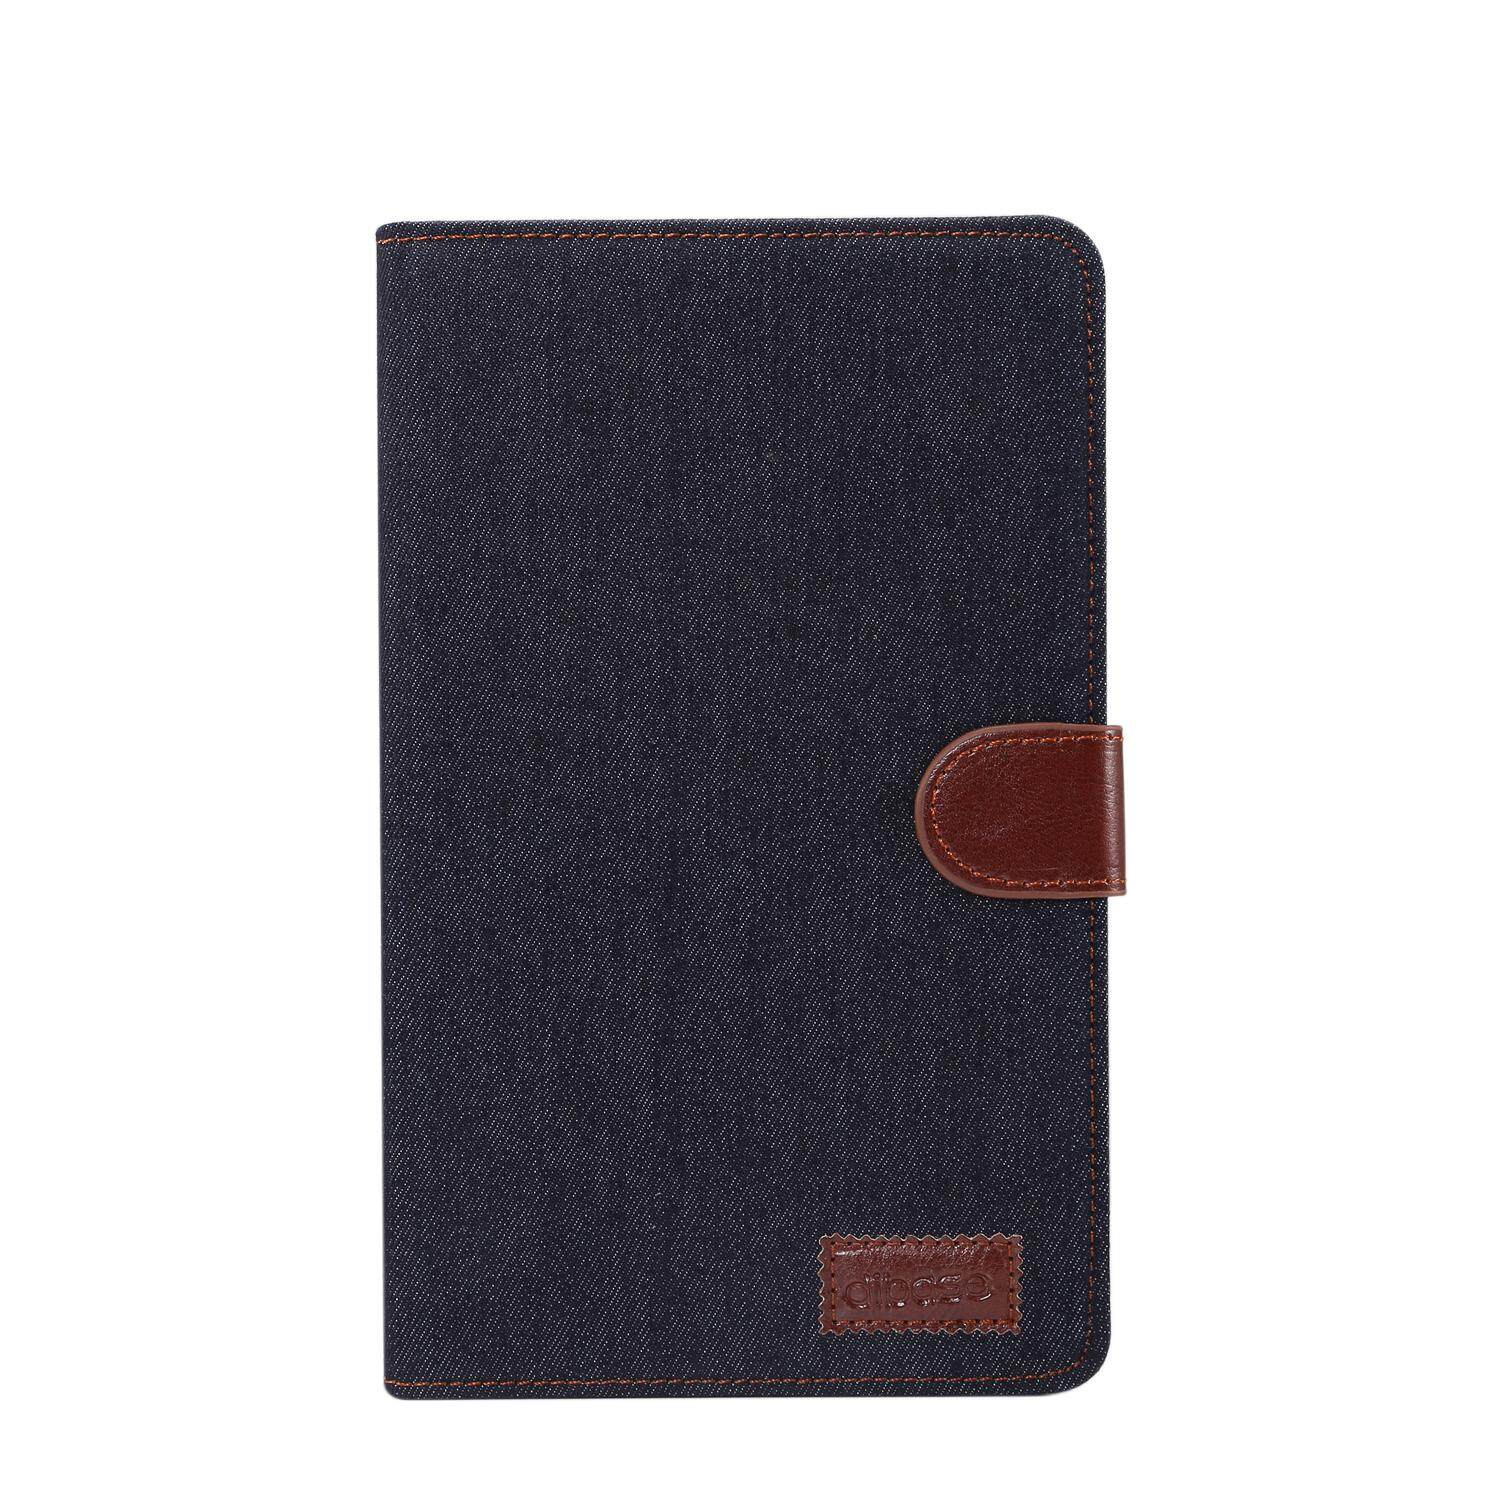 DWaybox PU Leather Case For Samsung Galaxy Tab A 8 (2019) P200 P205 With